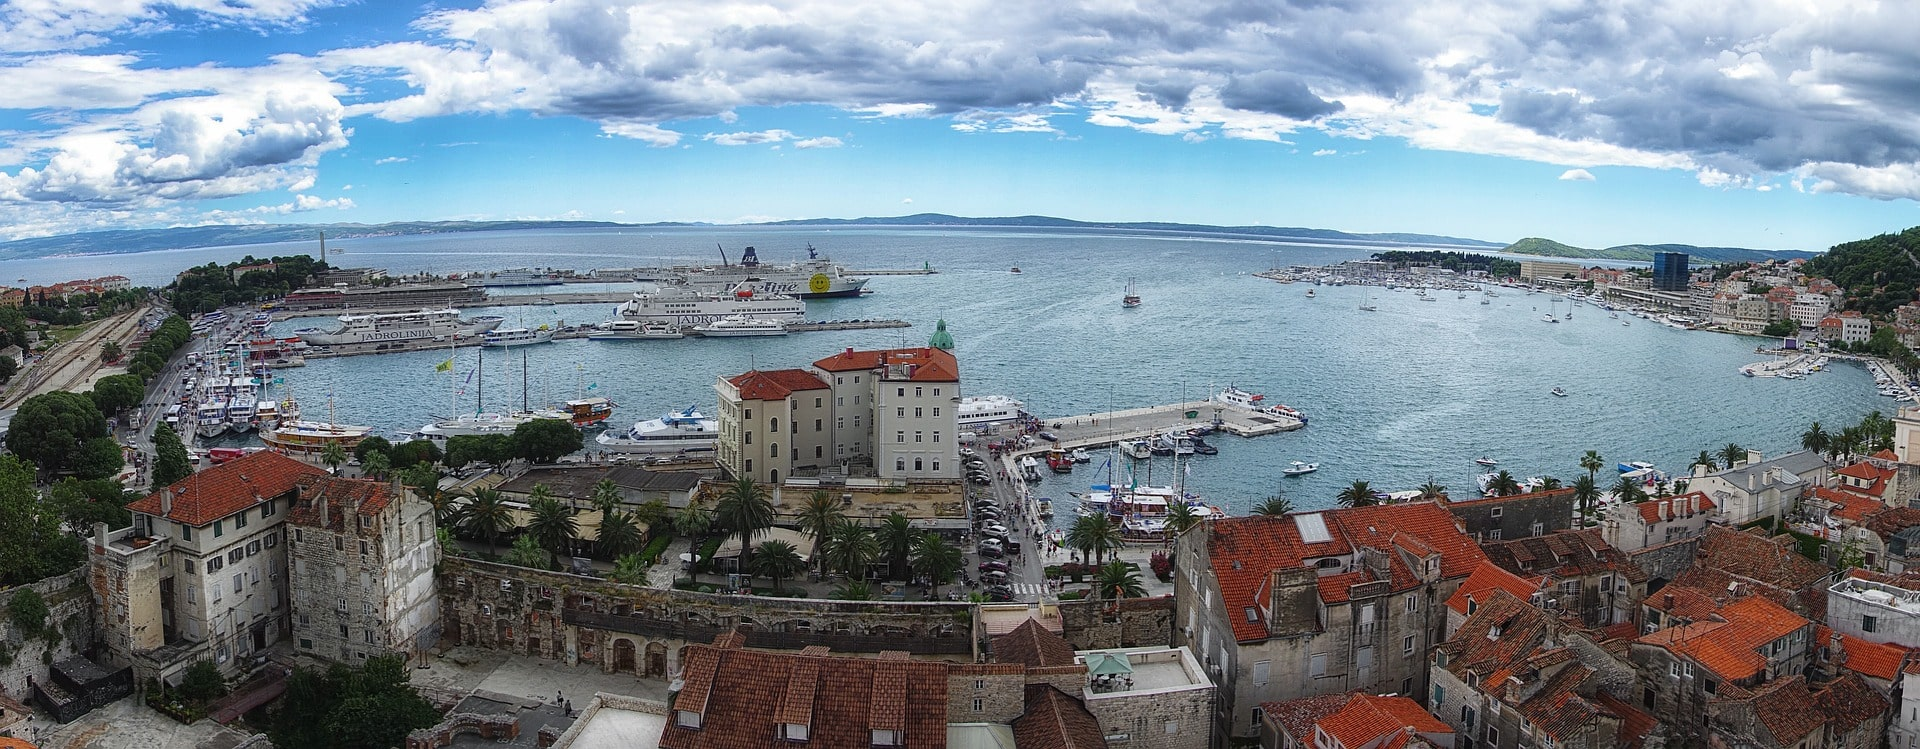 Split, Croatia – 2020 cruise ship schedule